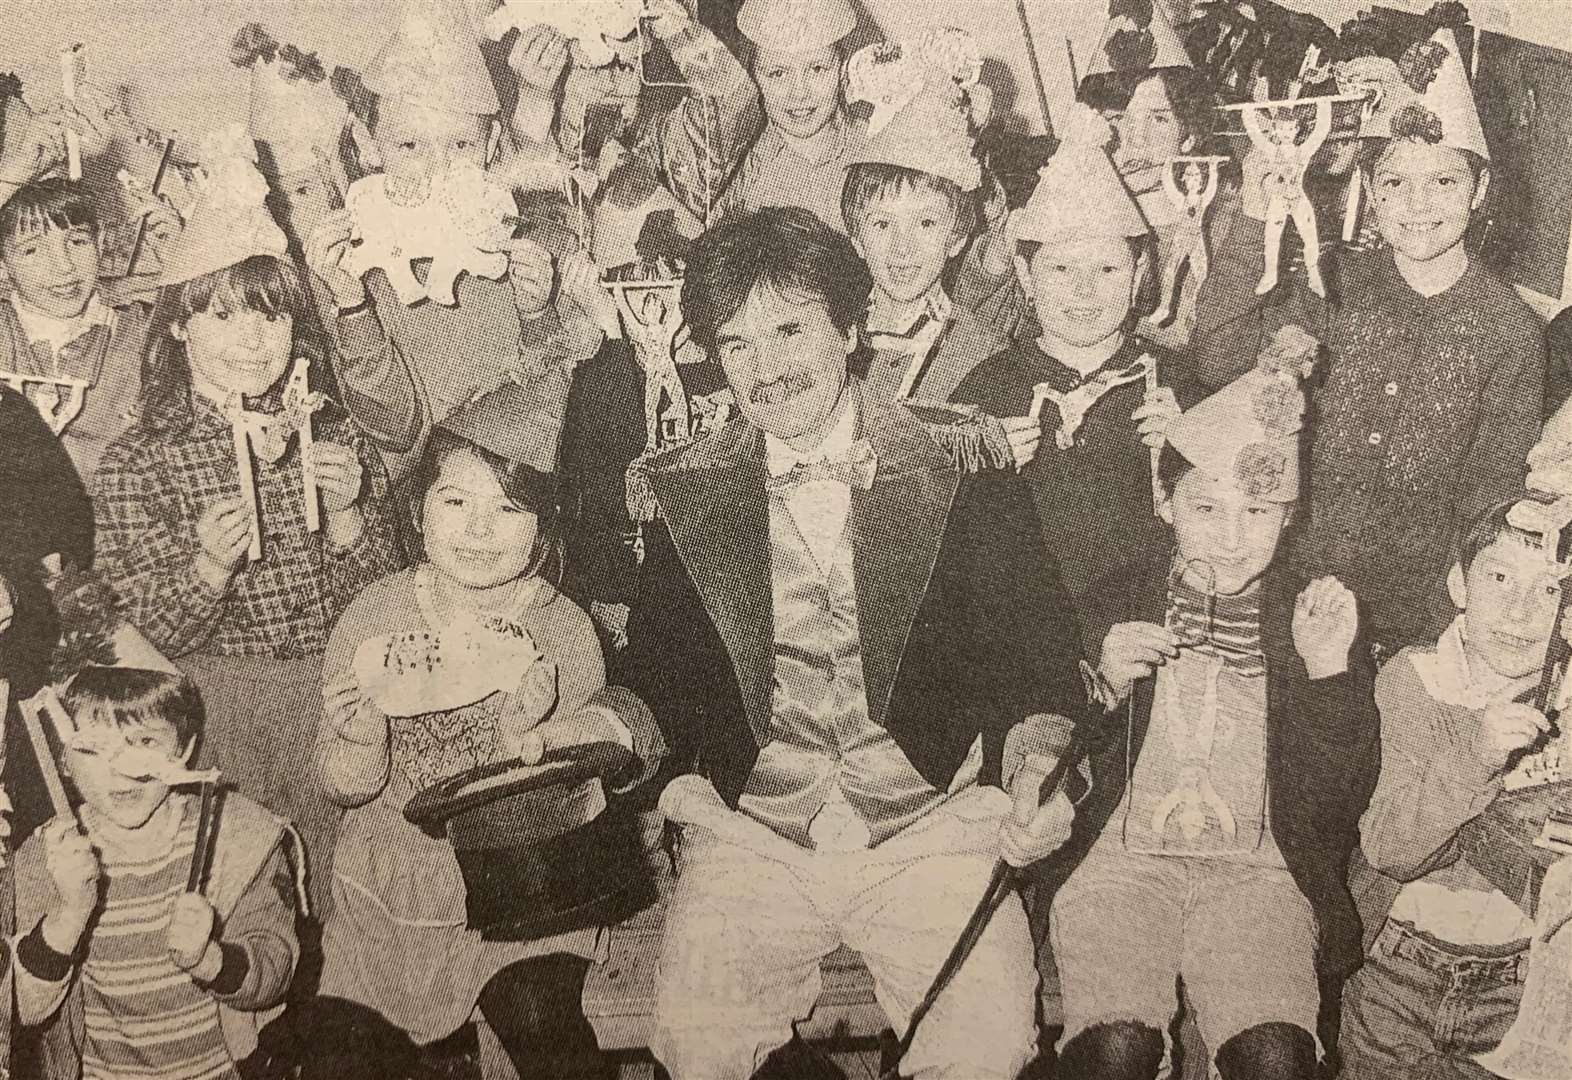 LOOKING BACK: Lots of arty circus fun for children